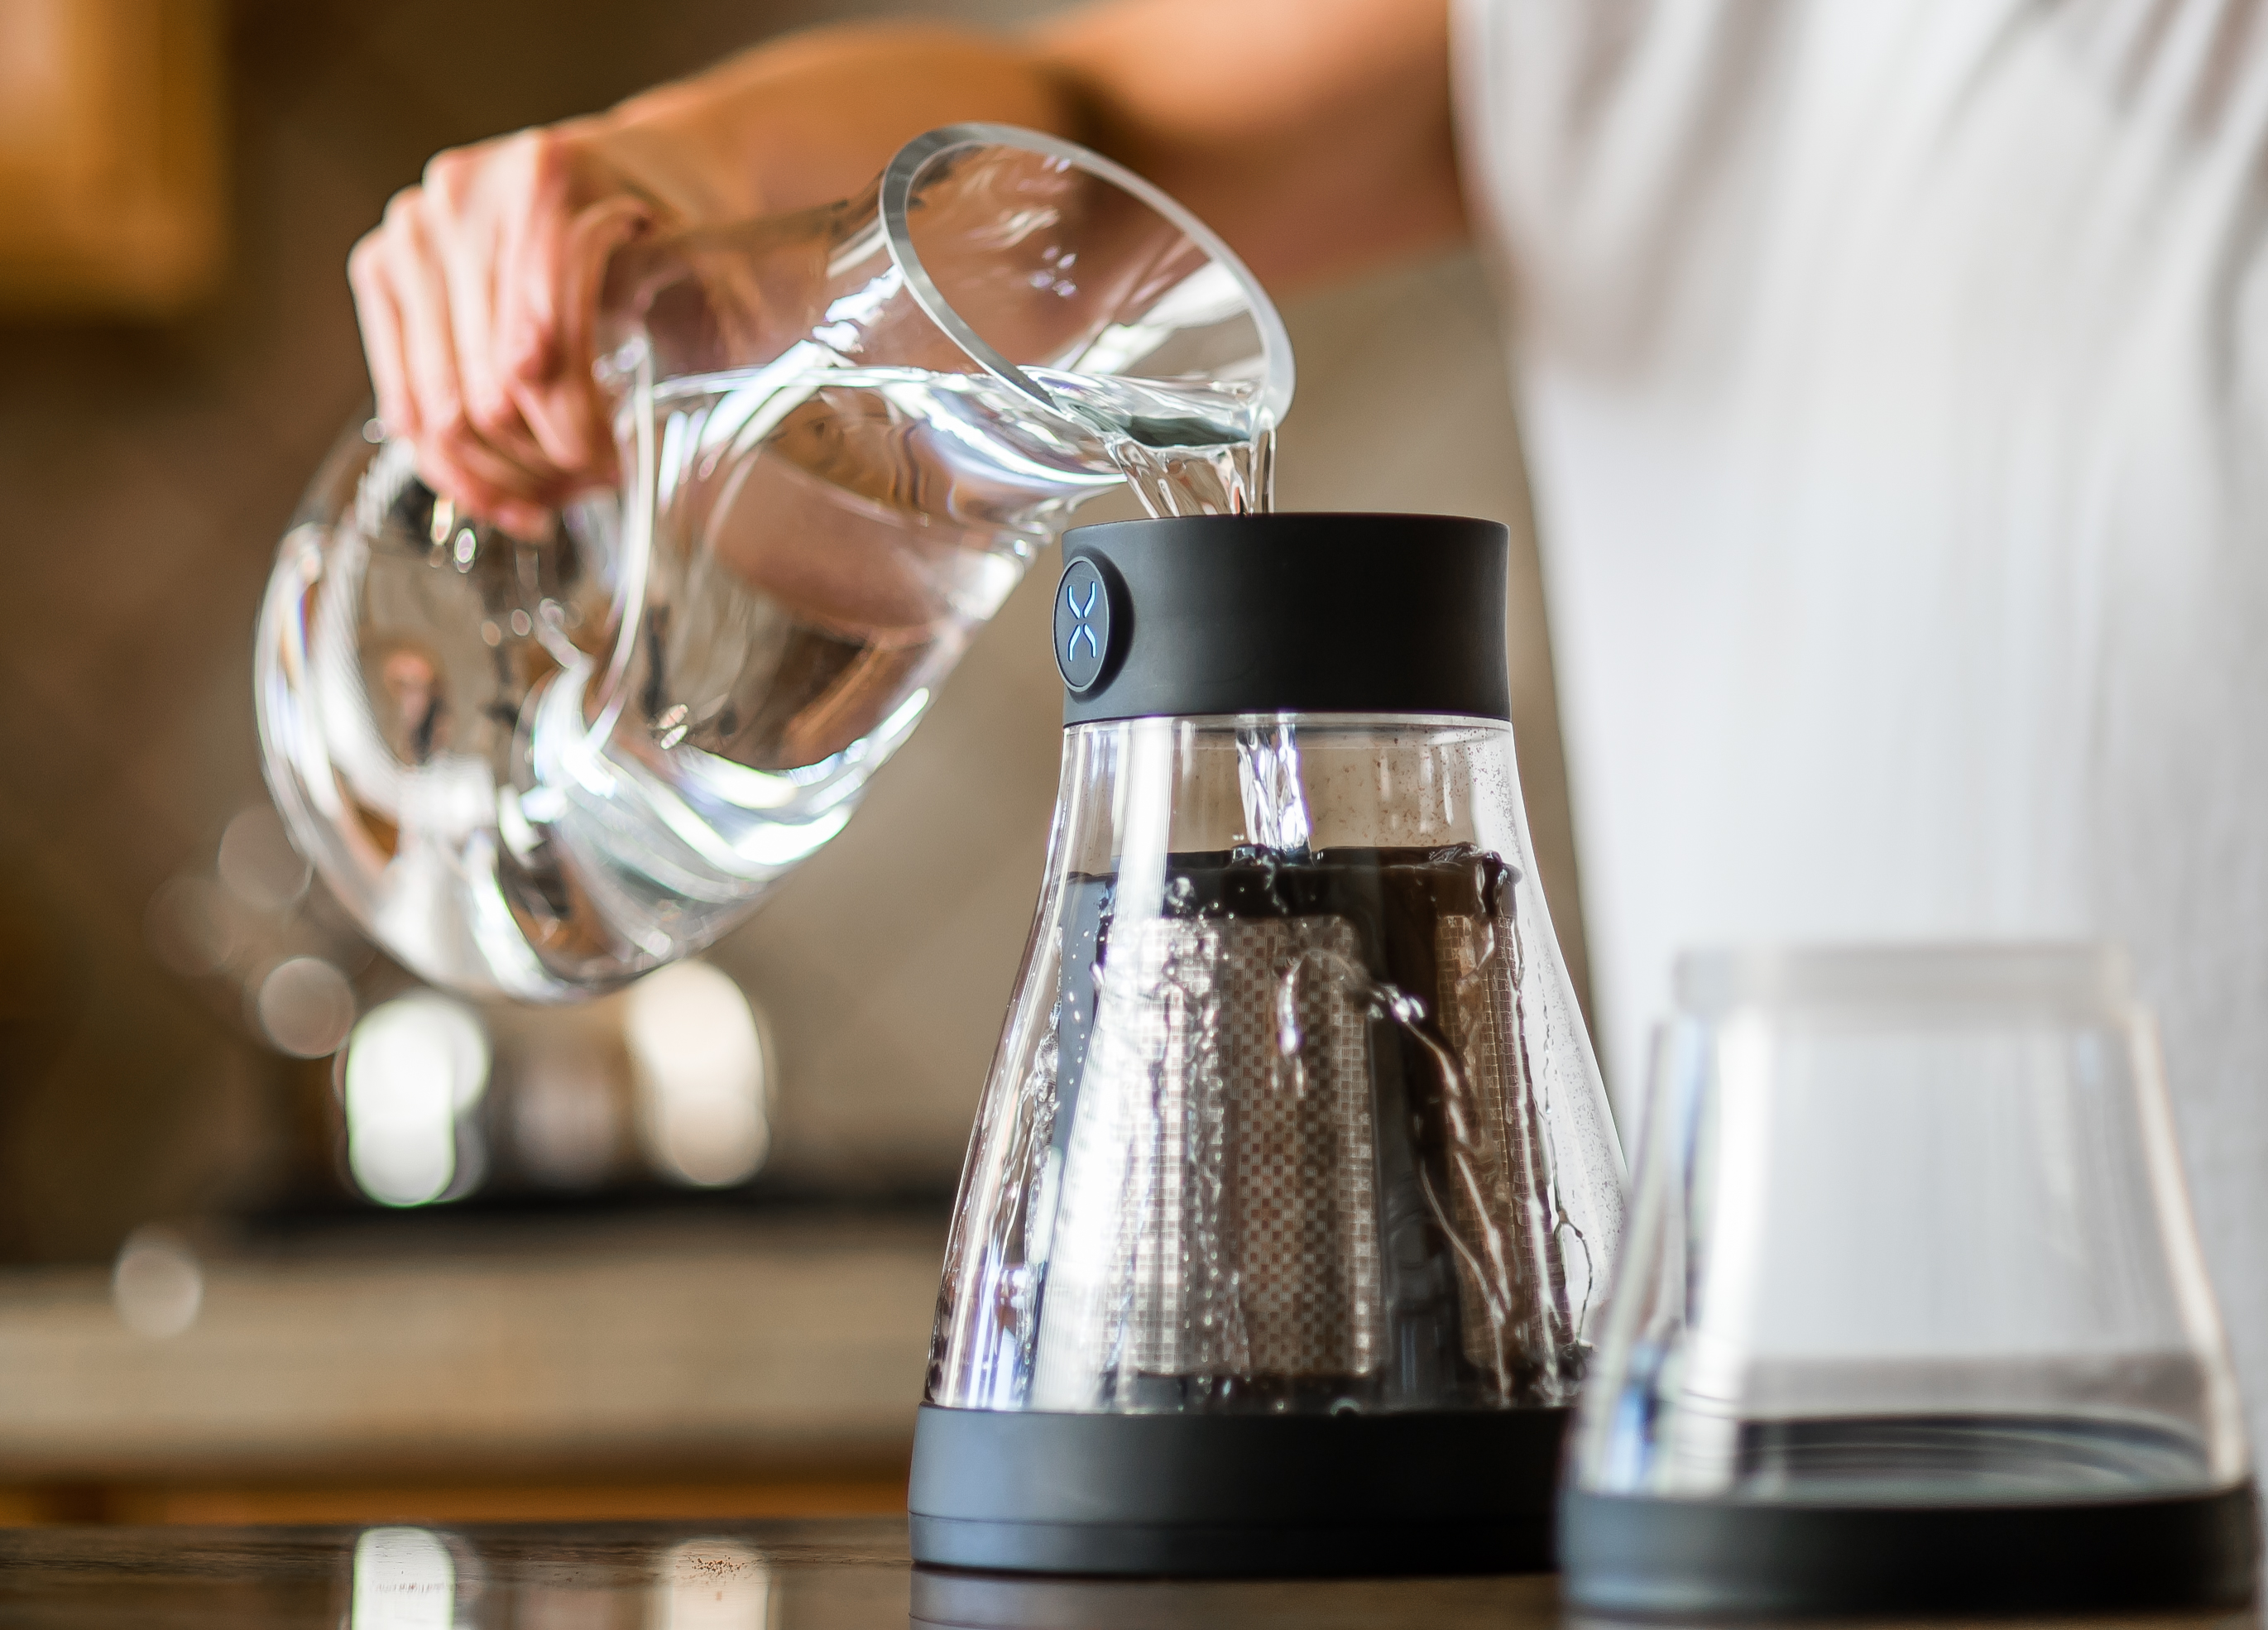 Increasingly popular 24-hour cup of coffee